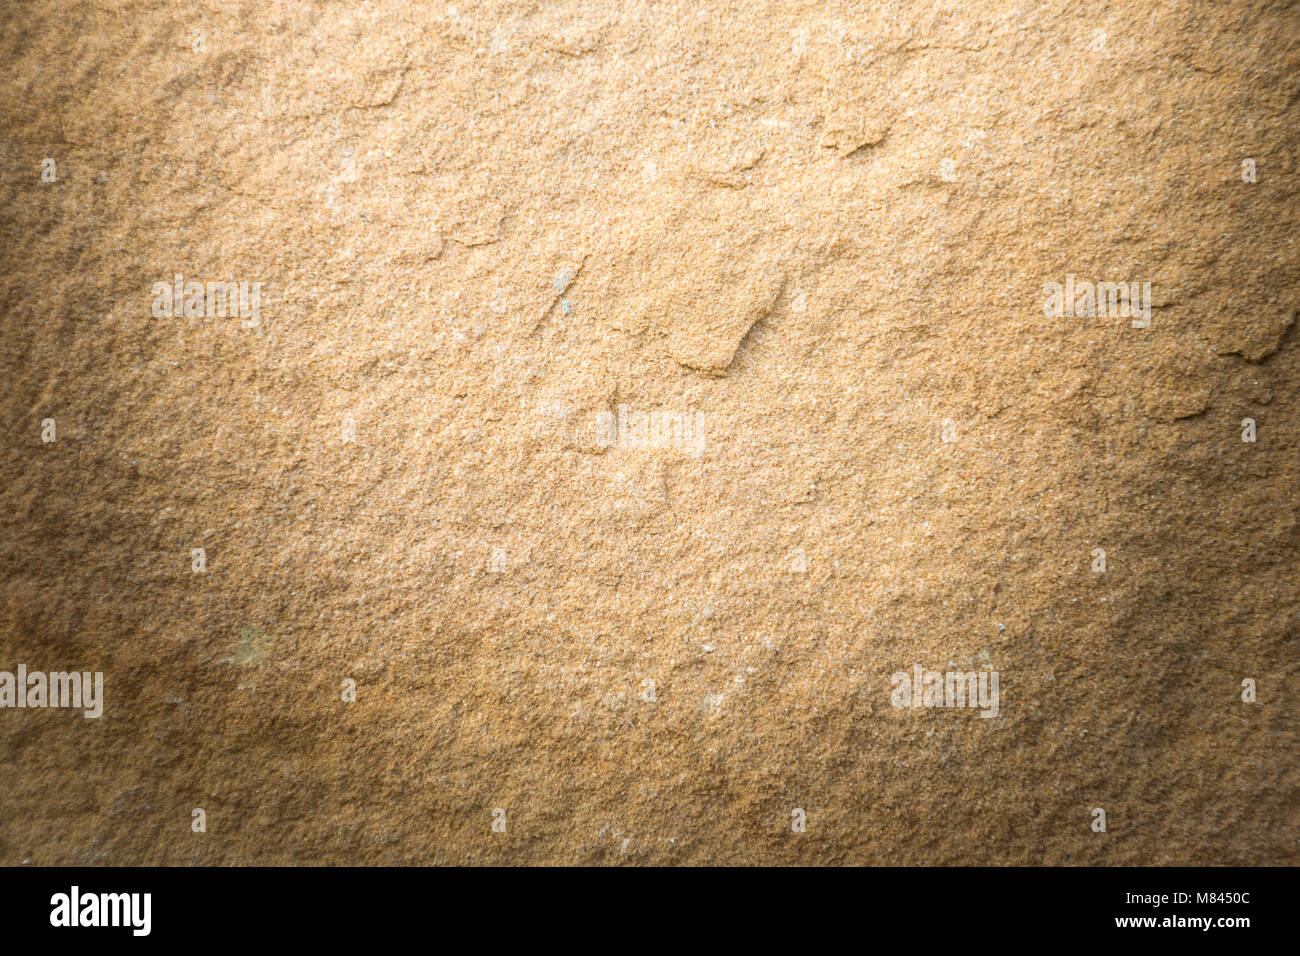 Stone texture or stone background for interior design business Stock ...